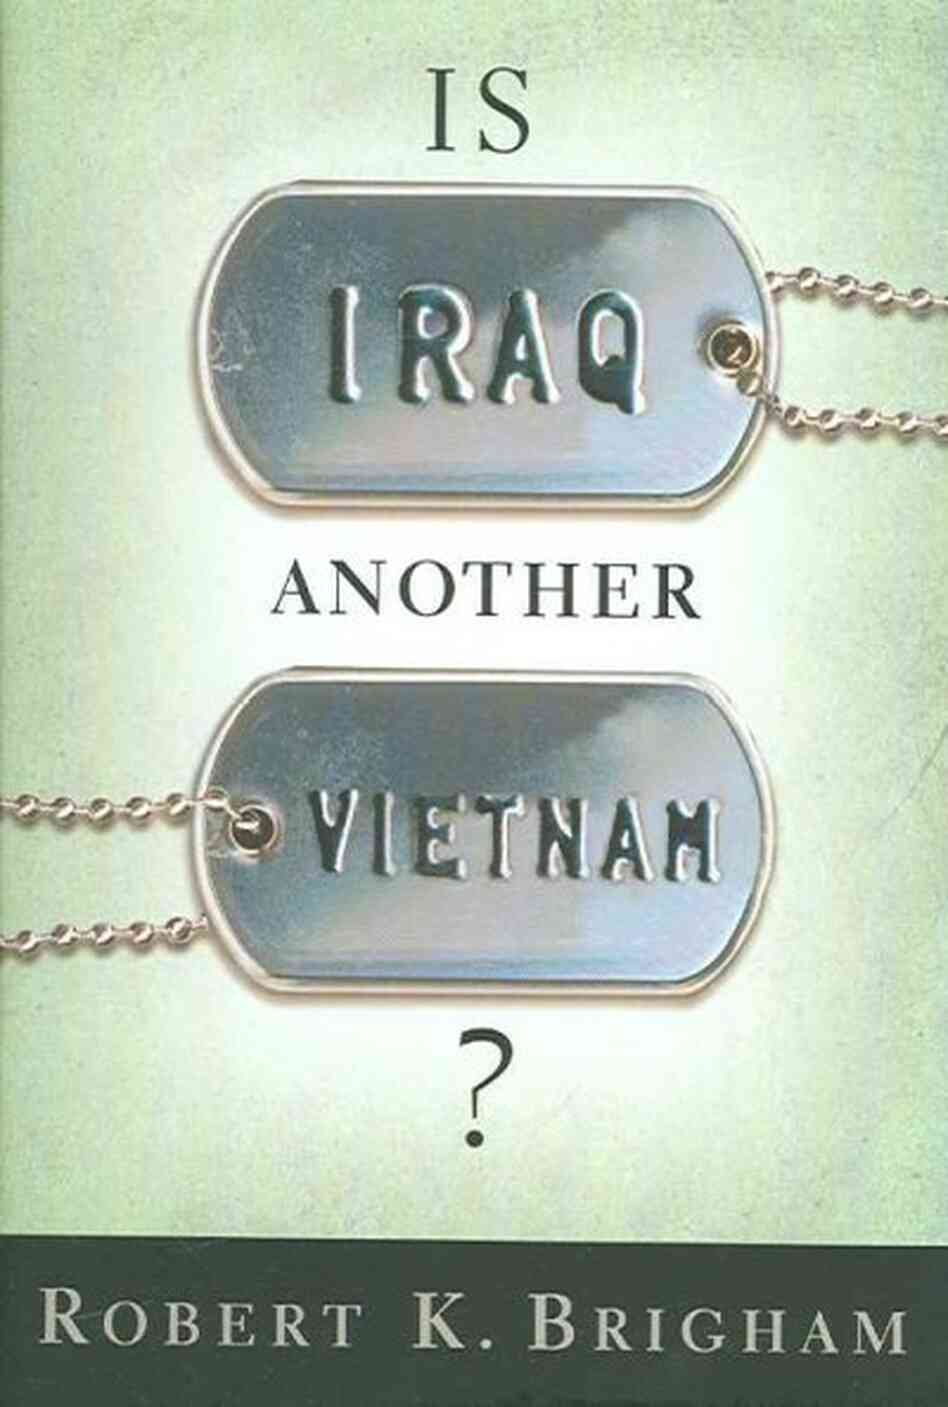 is iraq another vietnam essay Marking the fifth anniversary of the us-led invasion of iraq, ron nessen relfects  on the lessons of the vietnam war forty years after the tet offensive and my lai.